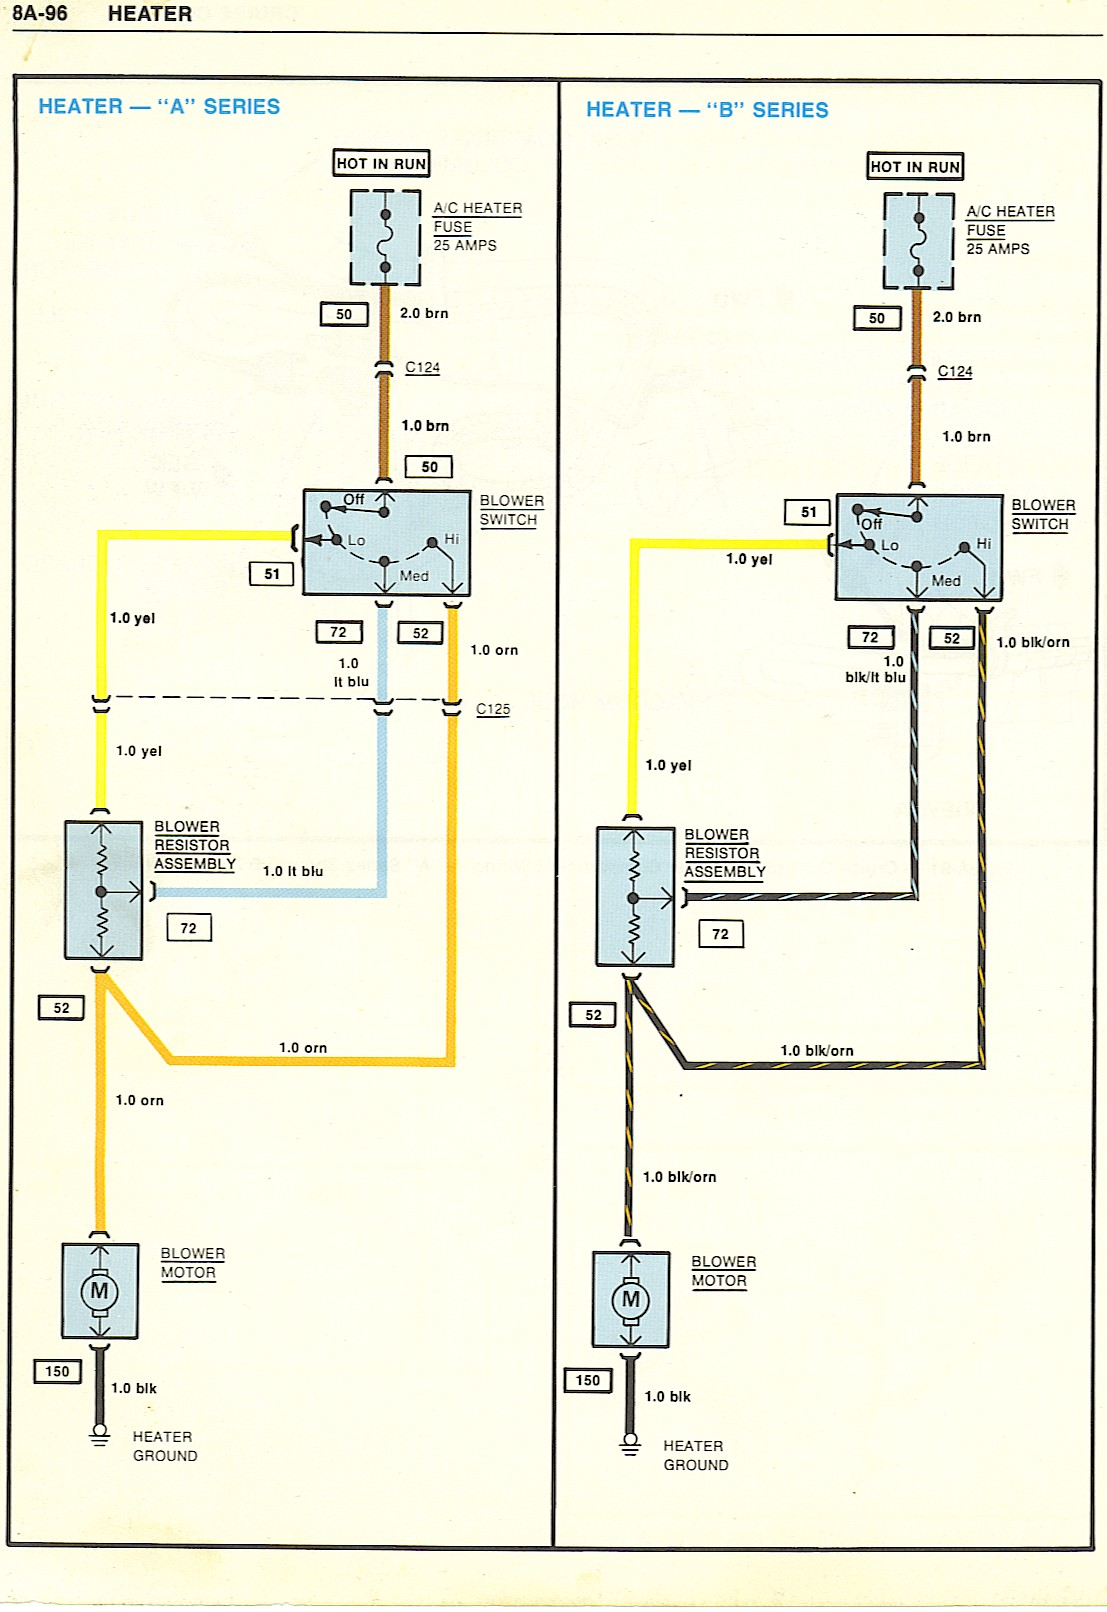 hight resolution of 1968 el camino wiper switch wiring diagram simple wiring schema 64 chevelle horn relay wiring diagram free download wiring diagram